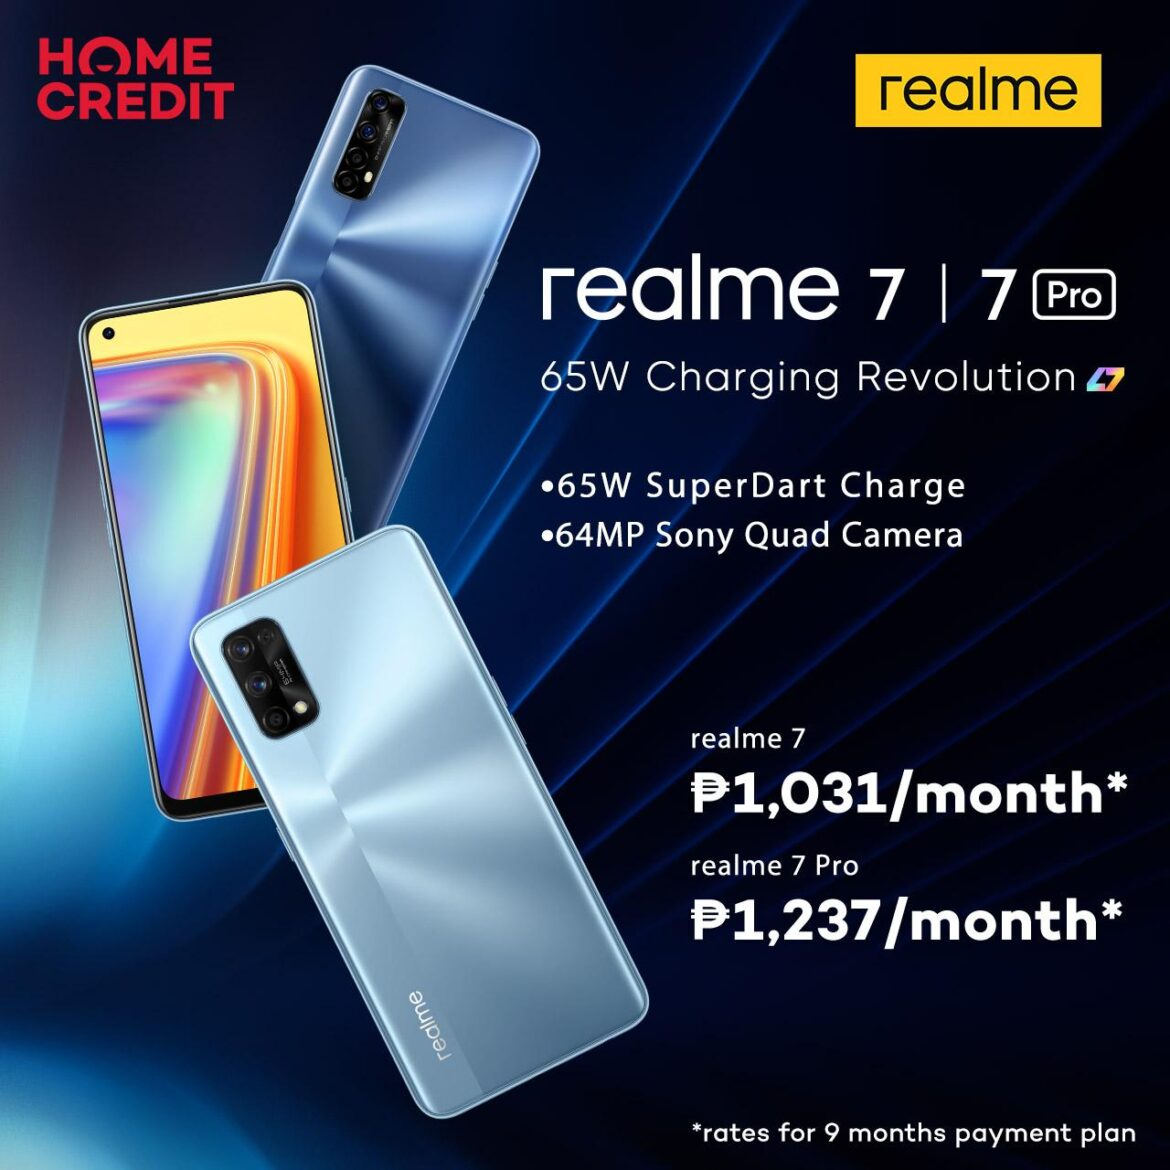 Get The realme 7 Series with Home Credit at 0%